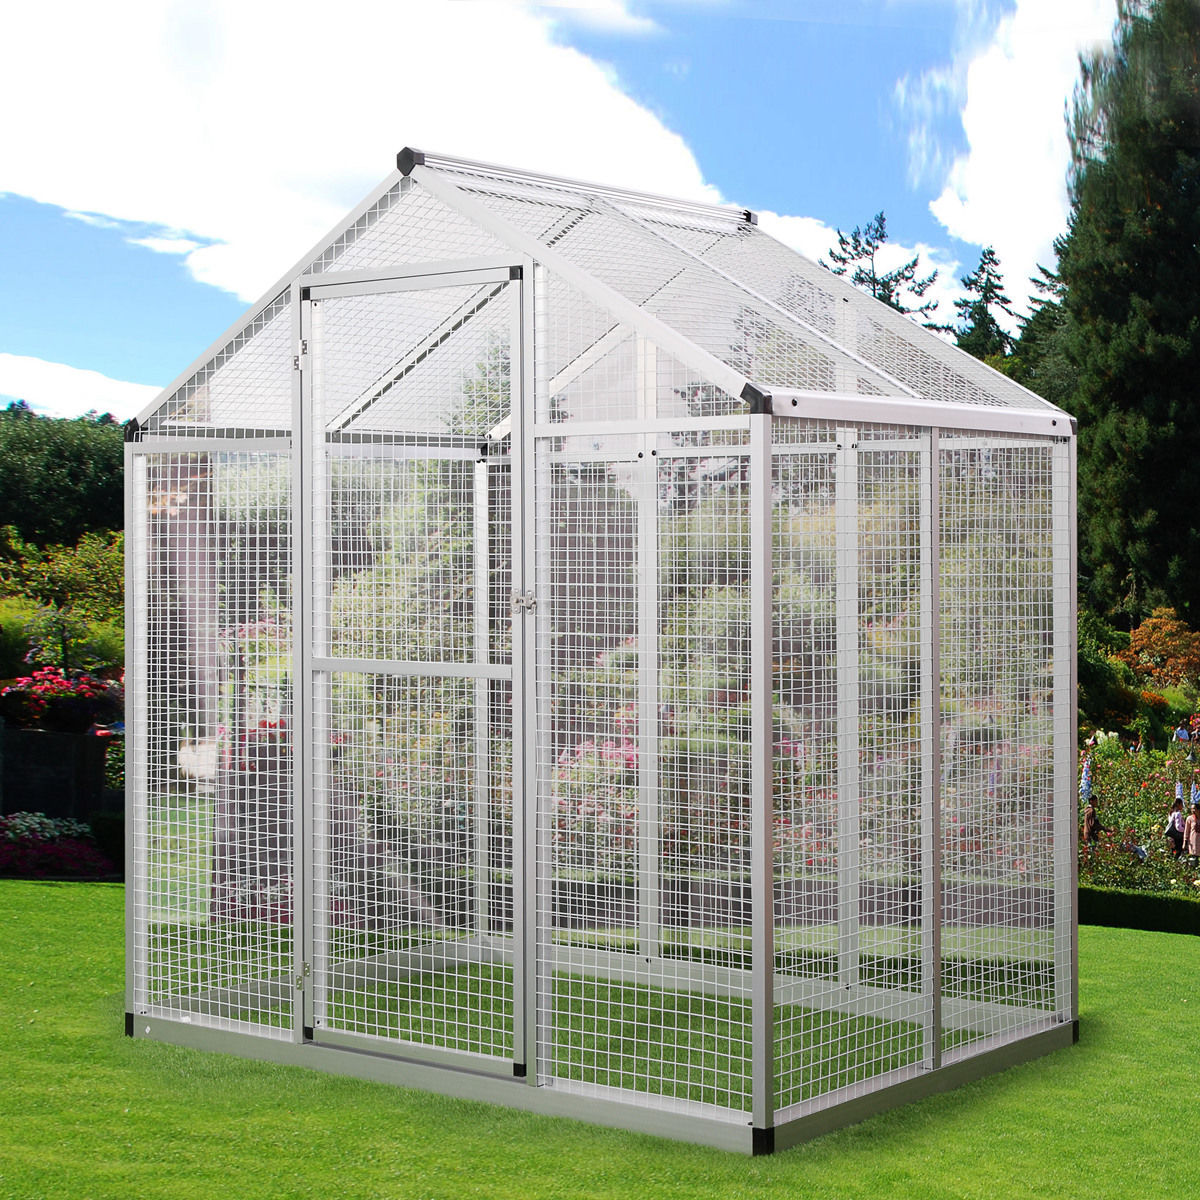 Lazymoon Vision Large Bird Cage Silver Aluminum Bird Aviary Walk In Parrot Cockatiel Macare Finch Cage Pet... by Lazymoon